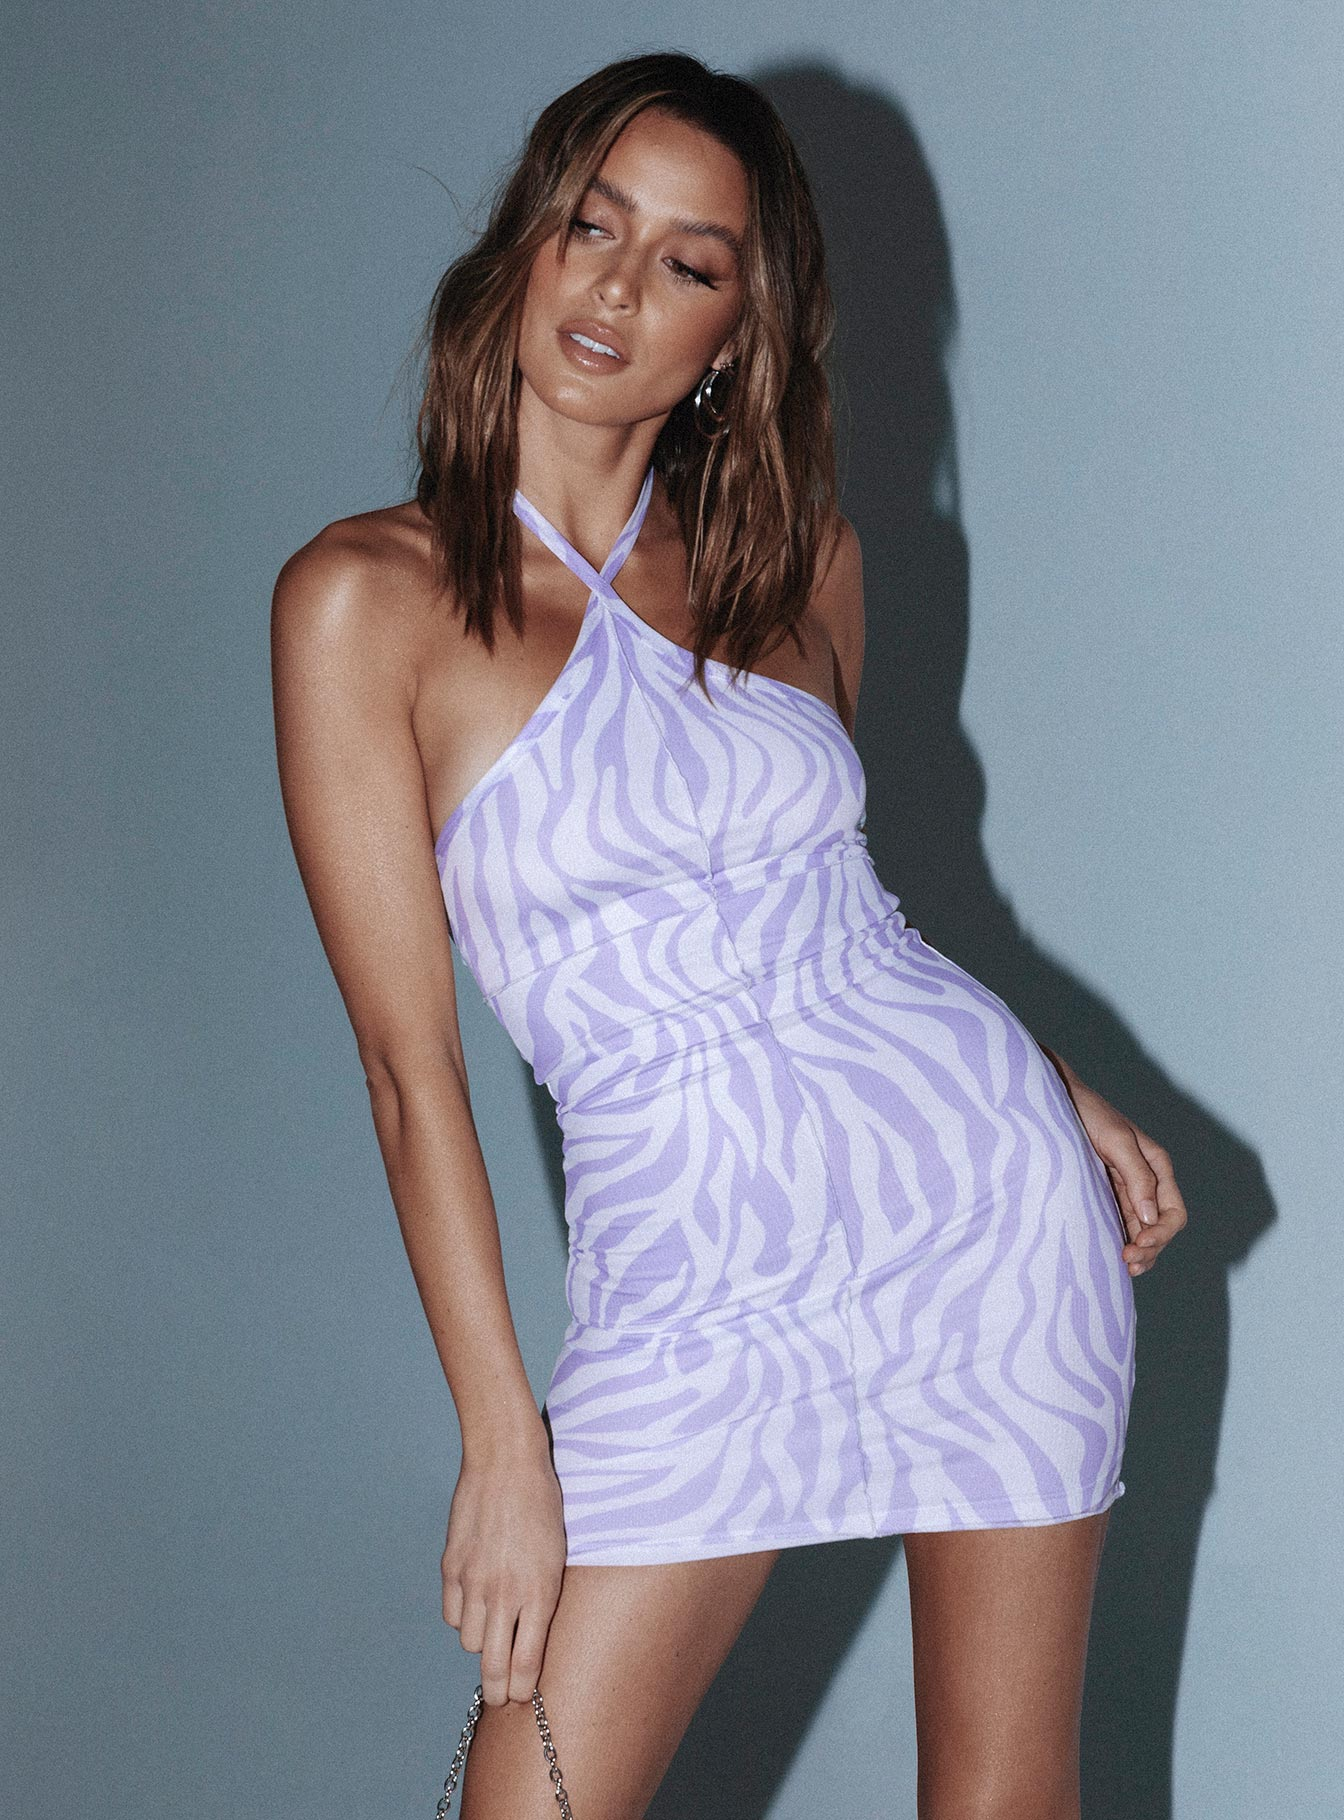 Lilac-colored halterneck dress with animal print